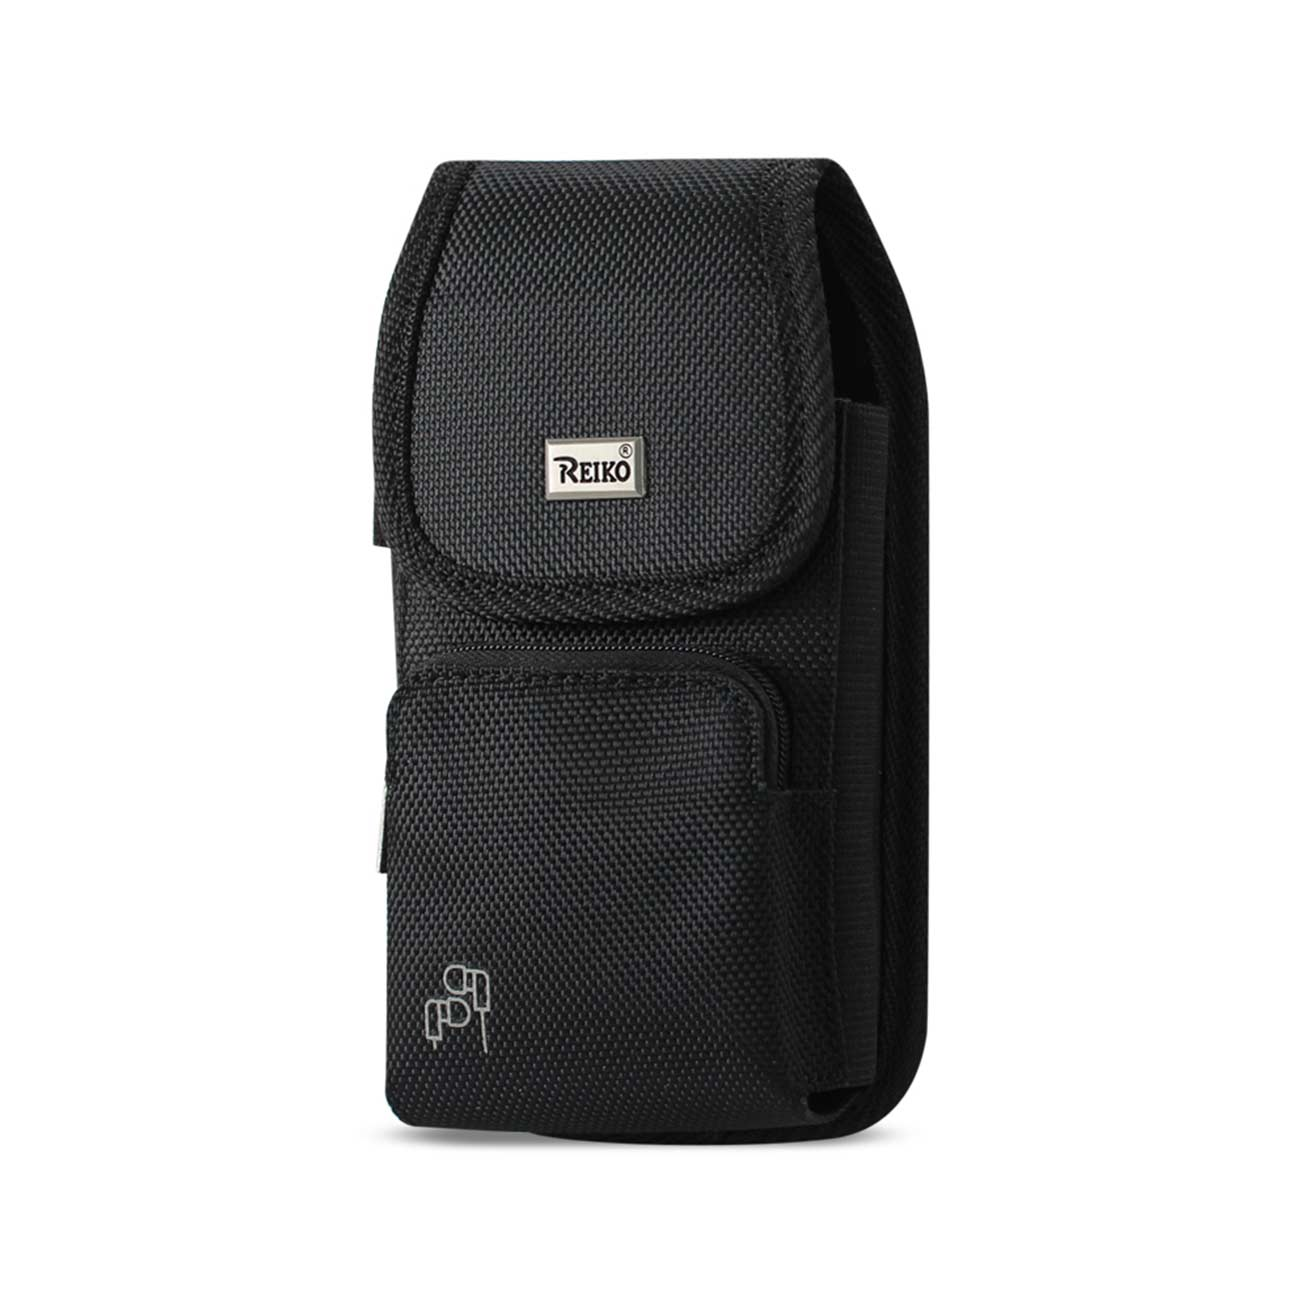 Vertical Rugged Pouch With Z Lid Pattern In Black (6.6X3.5X0.7 Inches)